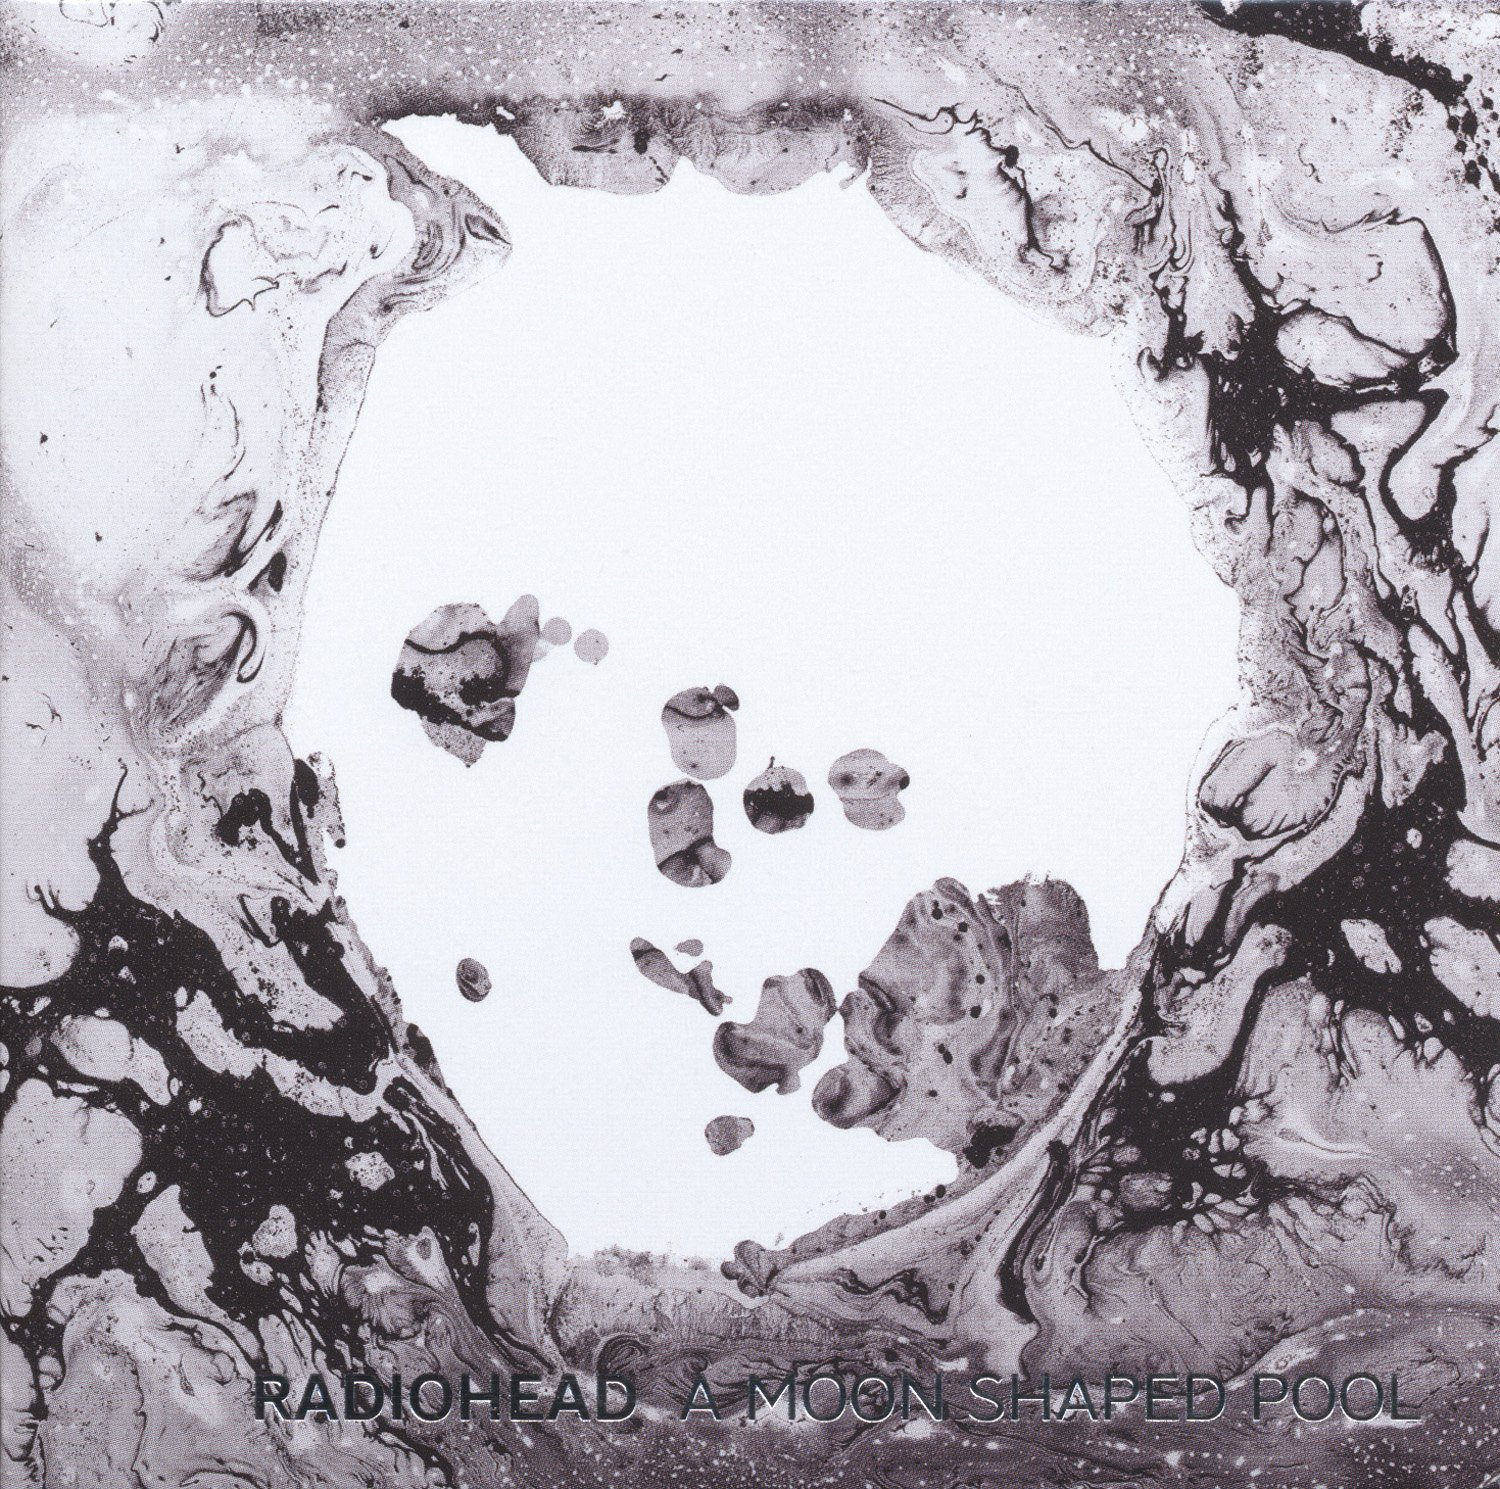 boom - Radiohead - A Moon Shaped Pool album image